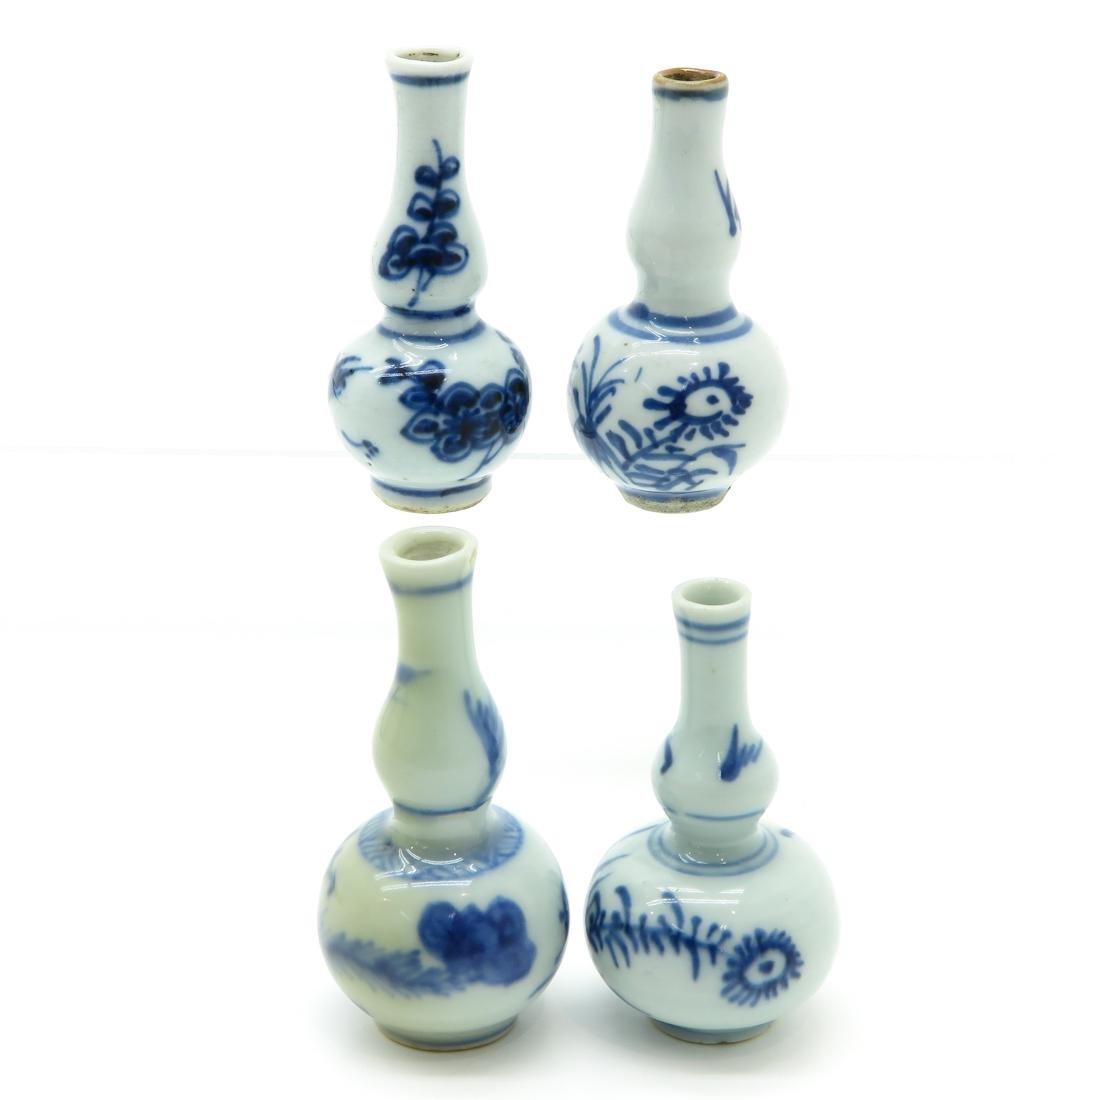 Lot of 4 Chinese Miniature Doll House Vases